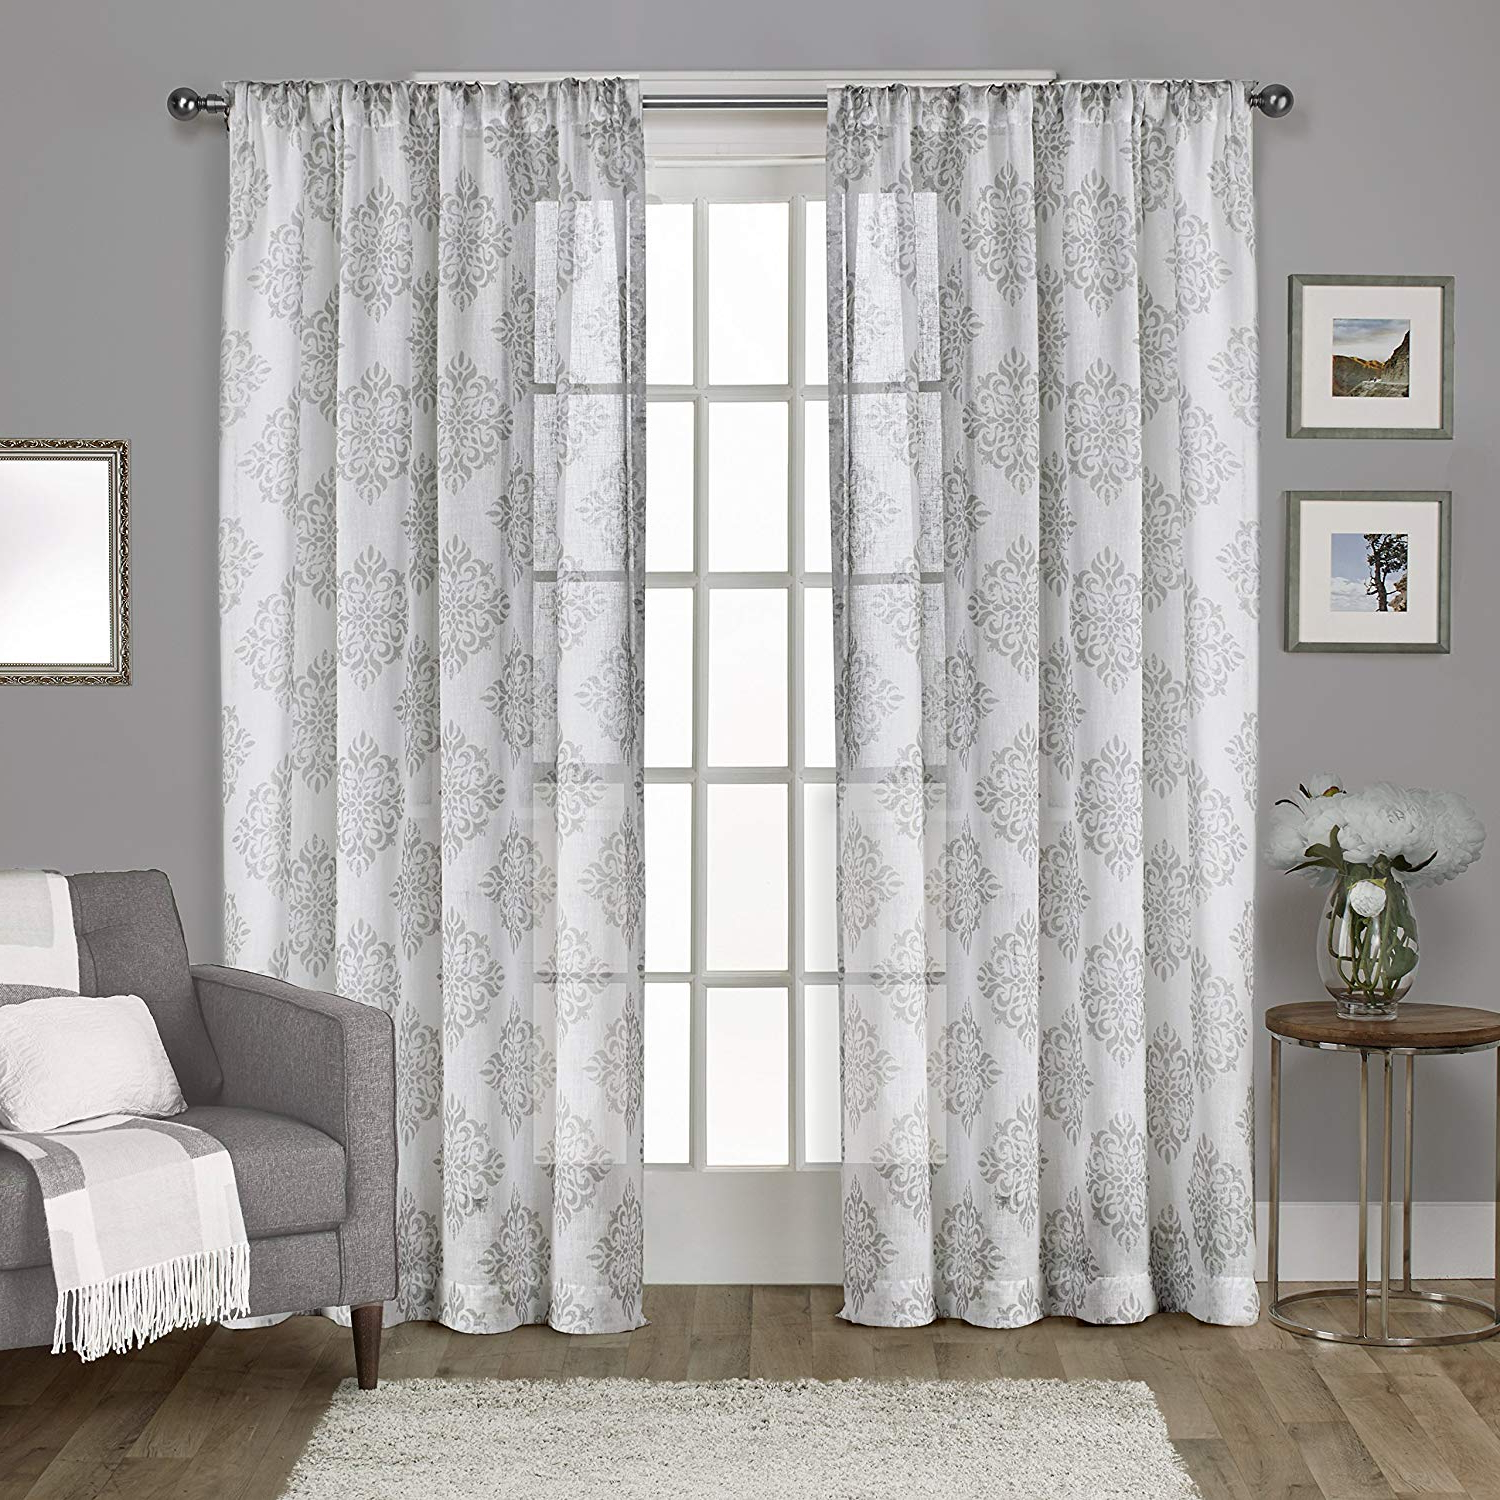 Well Known Belgian Sheer Window Curtain Panel Pairs With Rod Pocket Throughout Exclusive Home Curtains Nagano Medallion Belgian Linen Window Curtain Panel  Pair With Rod Pocket, 54X84, Dove Grey, 2 Piece (View 17 of 20)